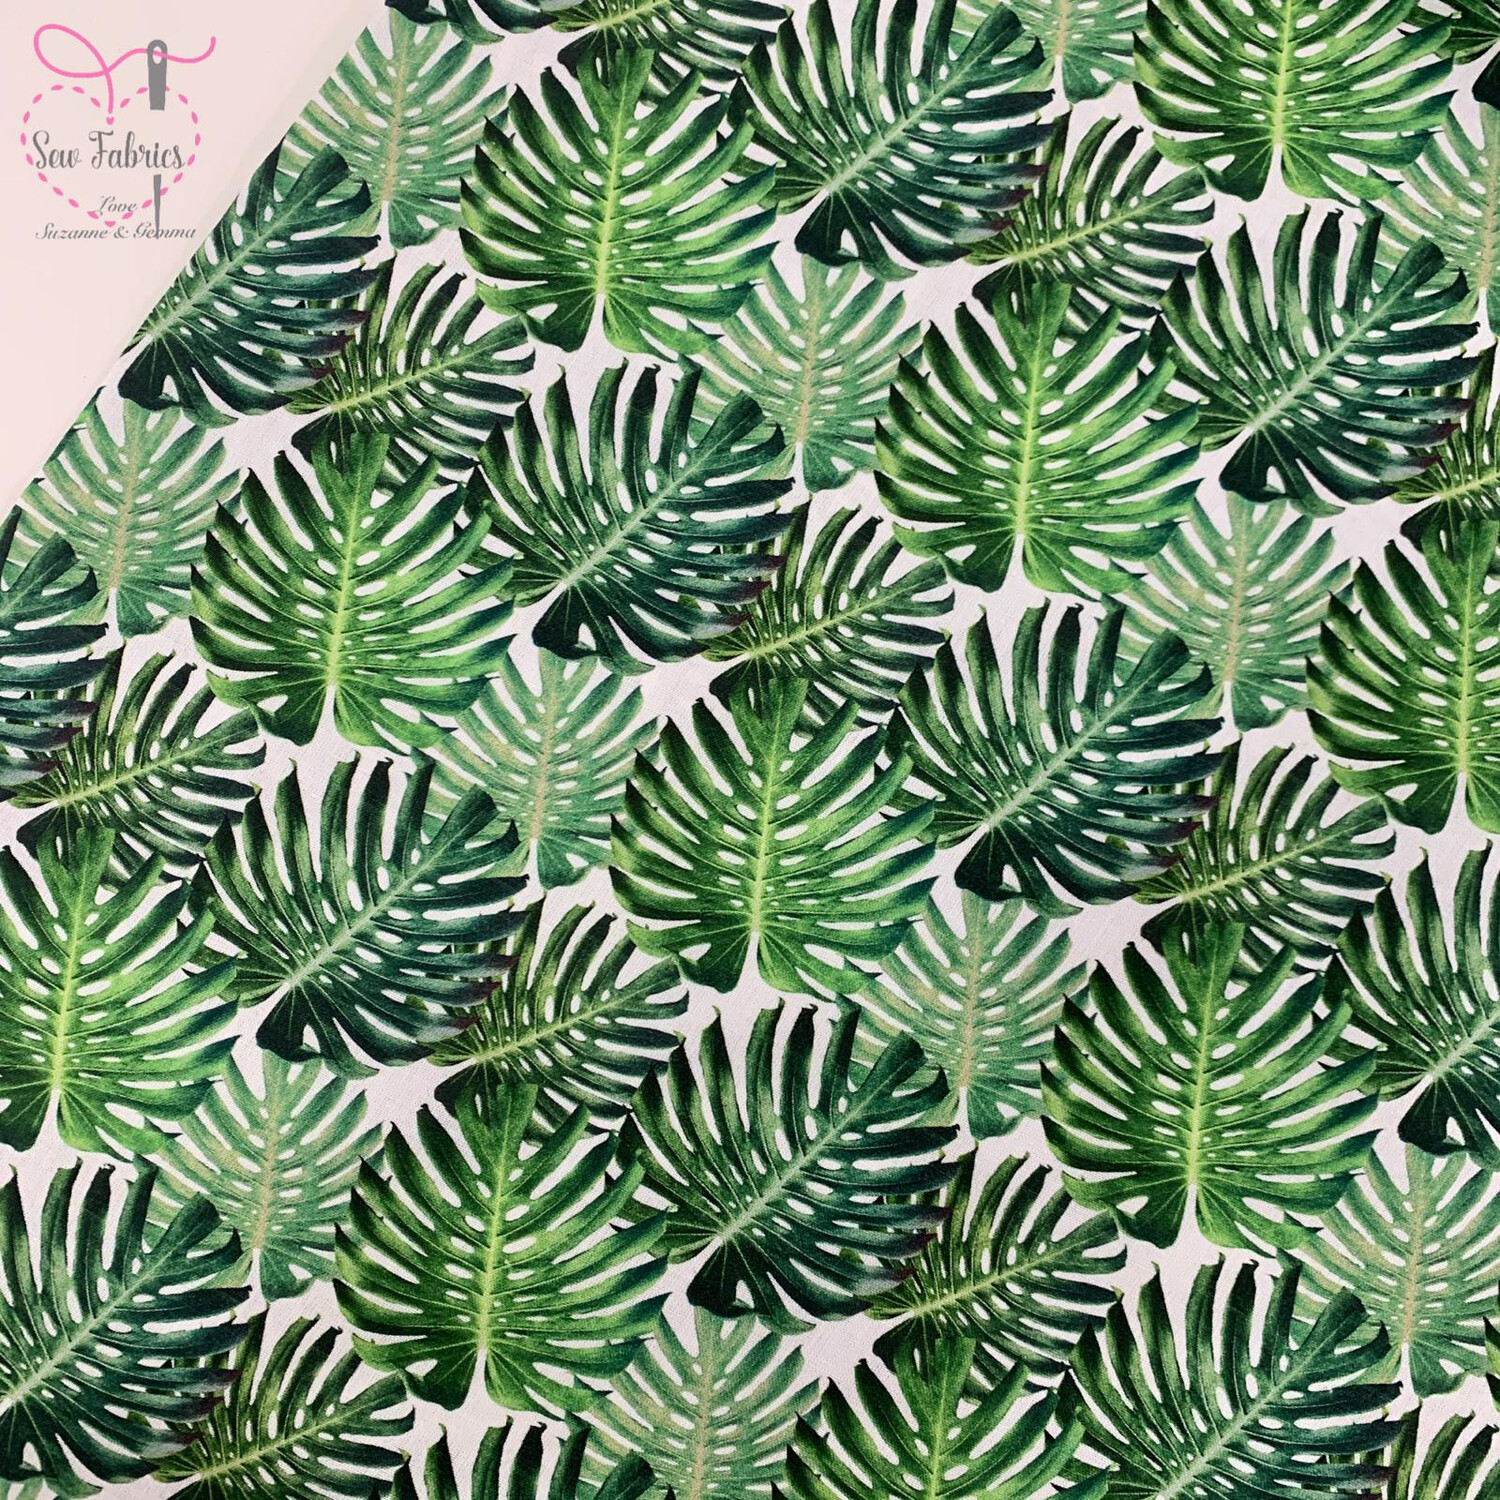 "John Louden Green Tropical Palm Leaf Floral Fabric 100% Cotton 60""/150cm Width, Boho Nature Material"